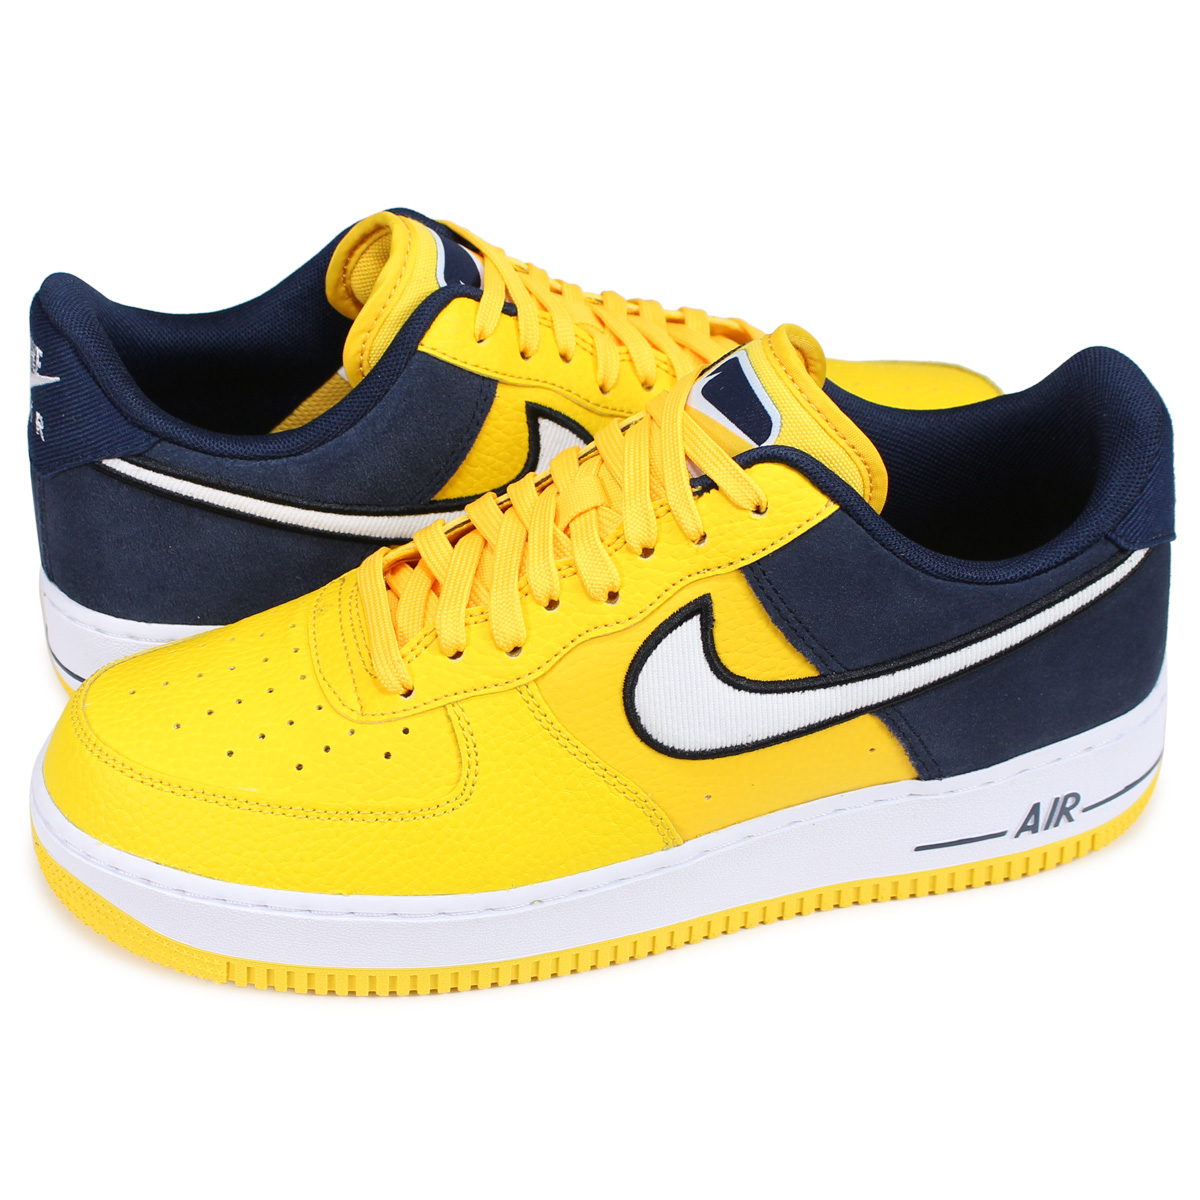 Nike NIKE air force 1 sneakers men AIR FORCE 1 07 LV8 yellow AO2439 700 [193]